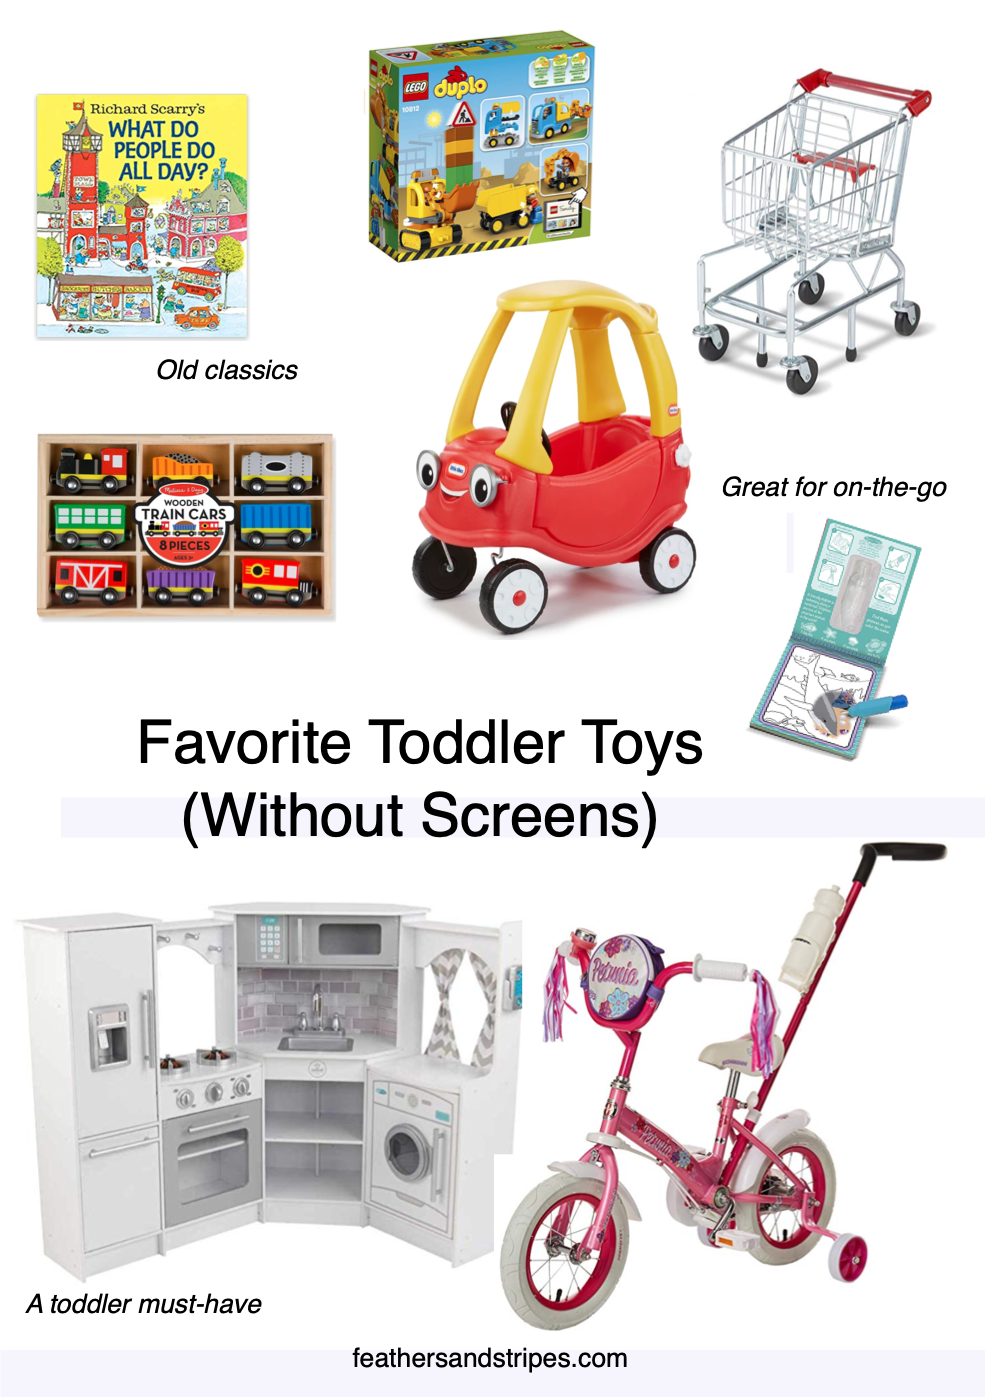 Favorite non-electronic toddler toys (the best toys - without screens!)